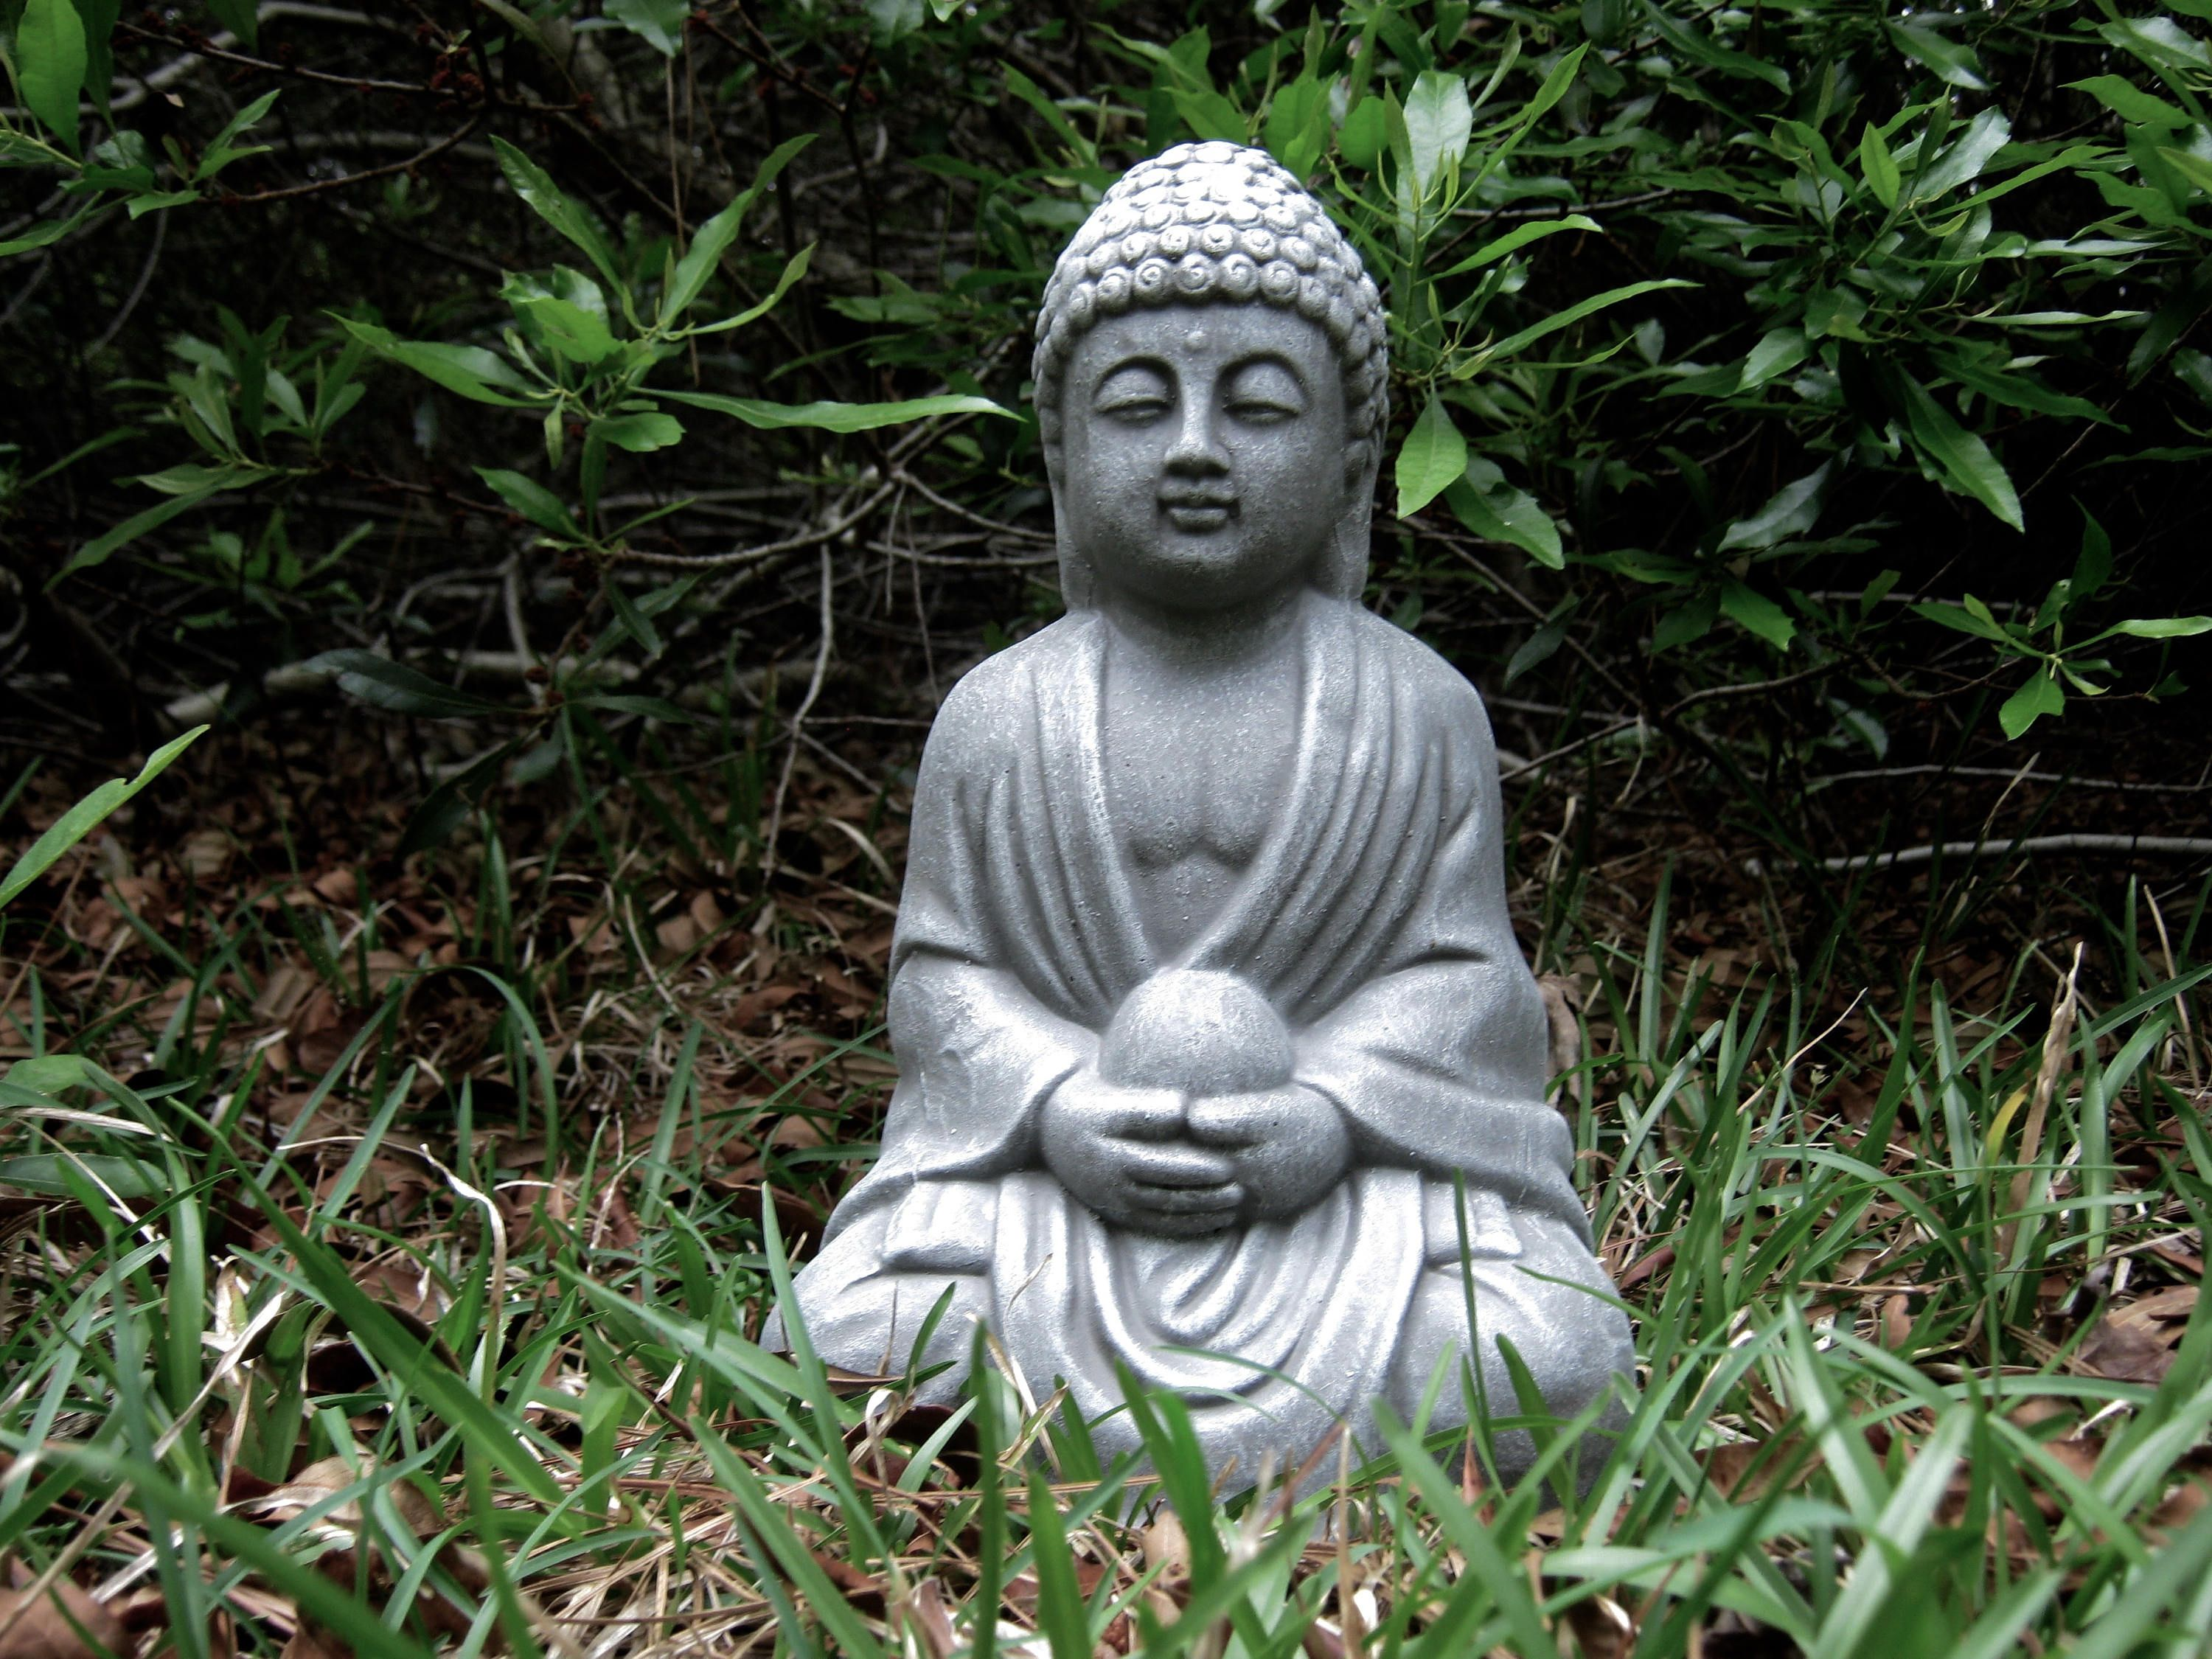 Outdoor decor statues - Buddha Statues Concrete Buddha Figure Holding Pearl Cement Outdoor Decor For Home And Garden